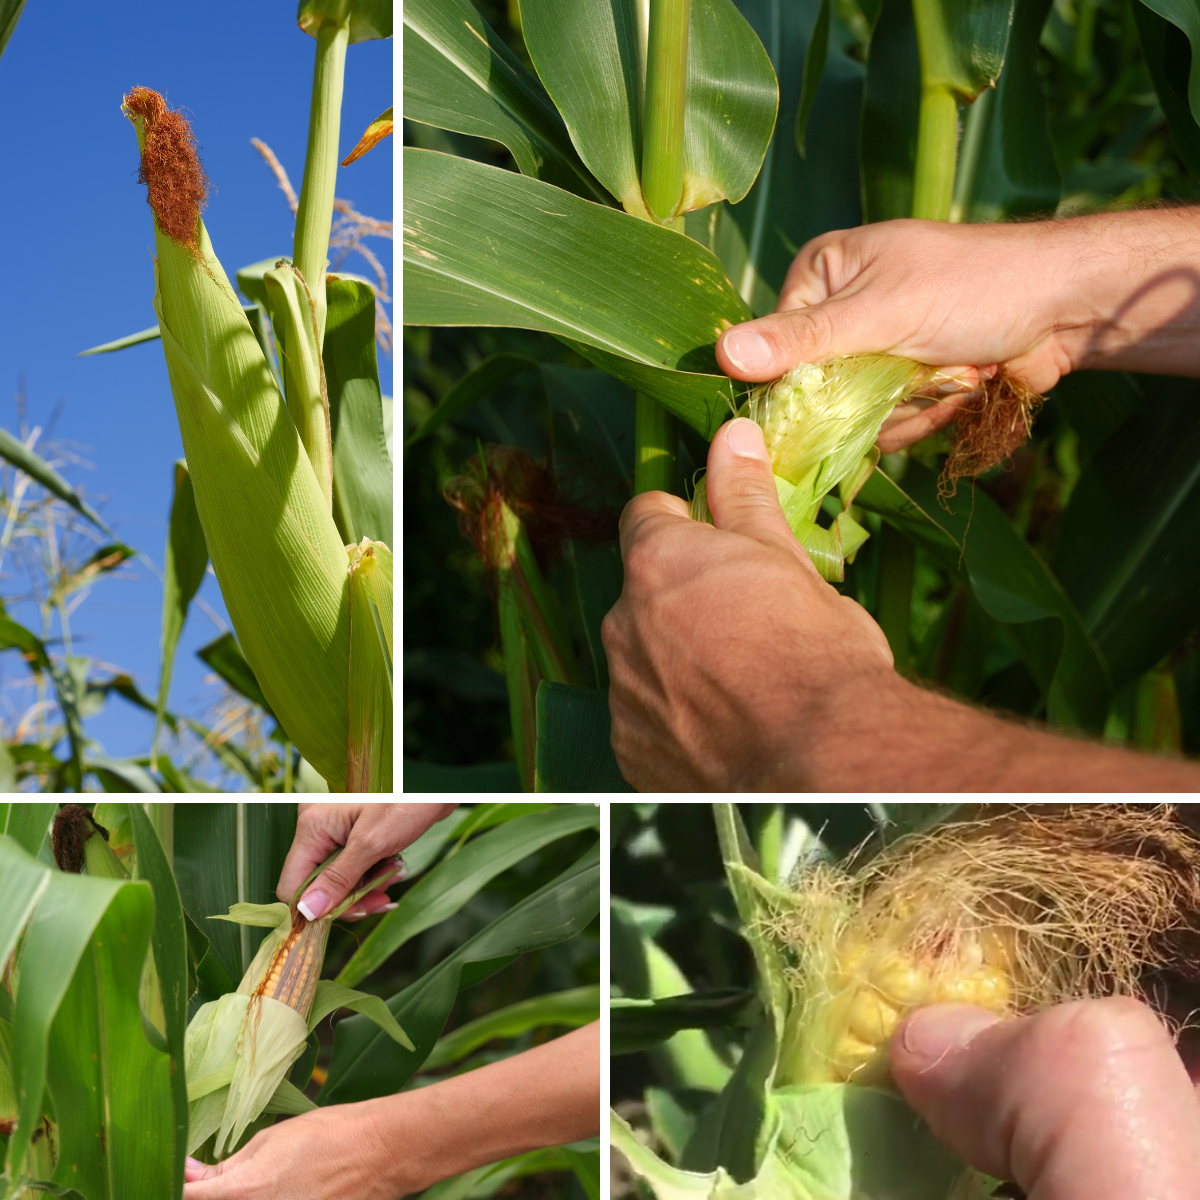 grid of four images of checking if a corn cob is ripe